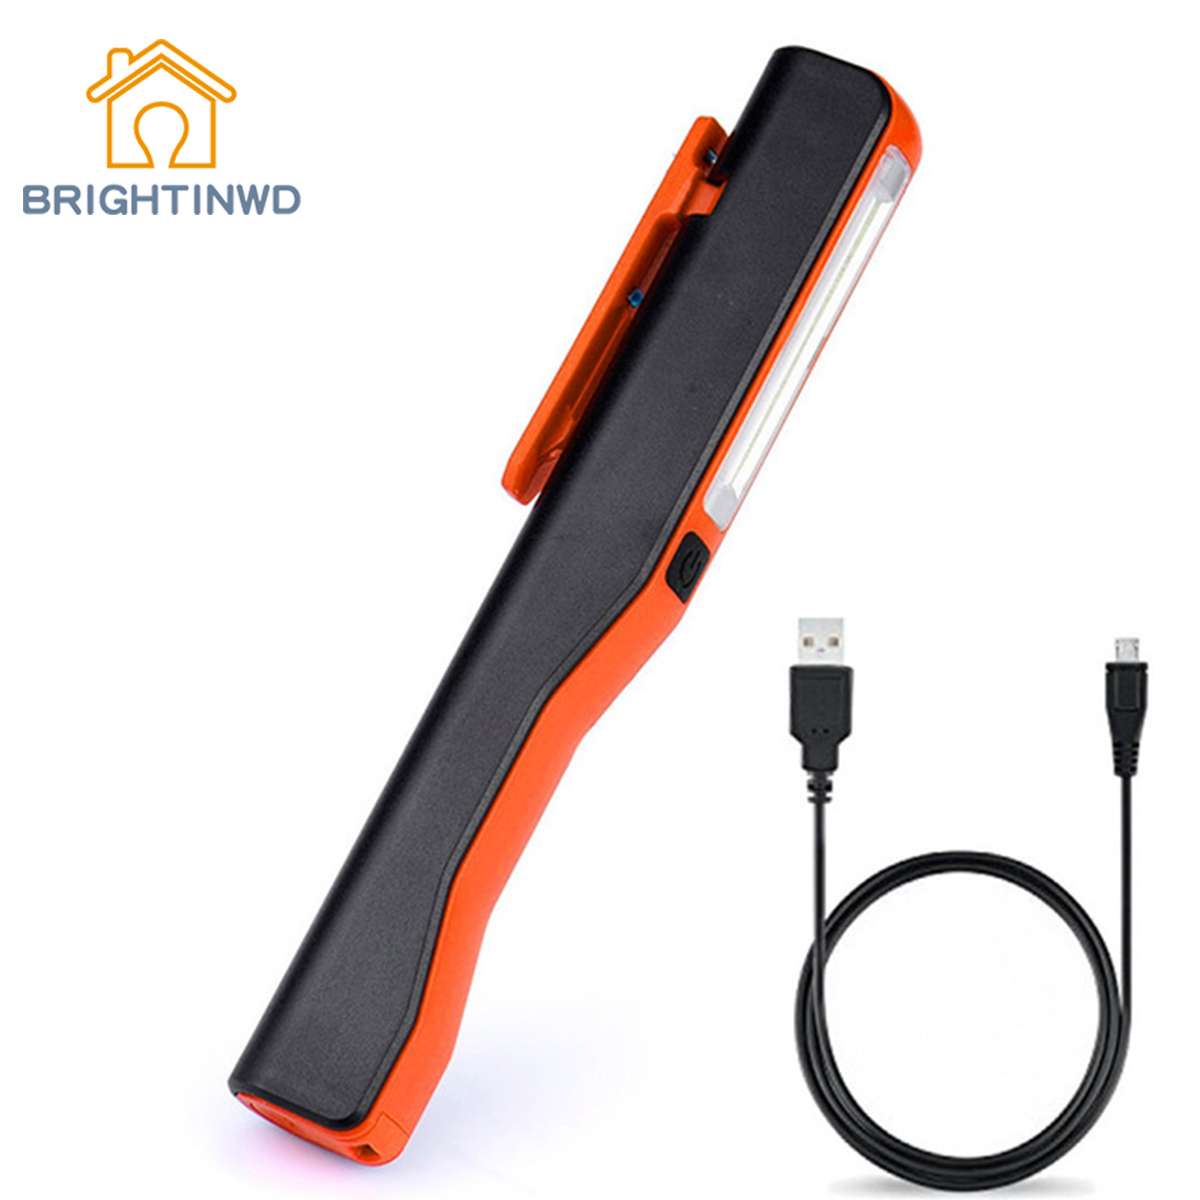 BRIGHTINWD High Quality  2in1 Rechargeable LED COB Camping Work Inspection Light Lamp Hand Torch Magnetic Rechargable Led LampBRIGHTINWD High Quality  2in1 Rechargeable LED COB Camping Work Inspection Light Lamp Hand Torch Magnetic Rechargable Led Lamp